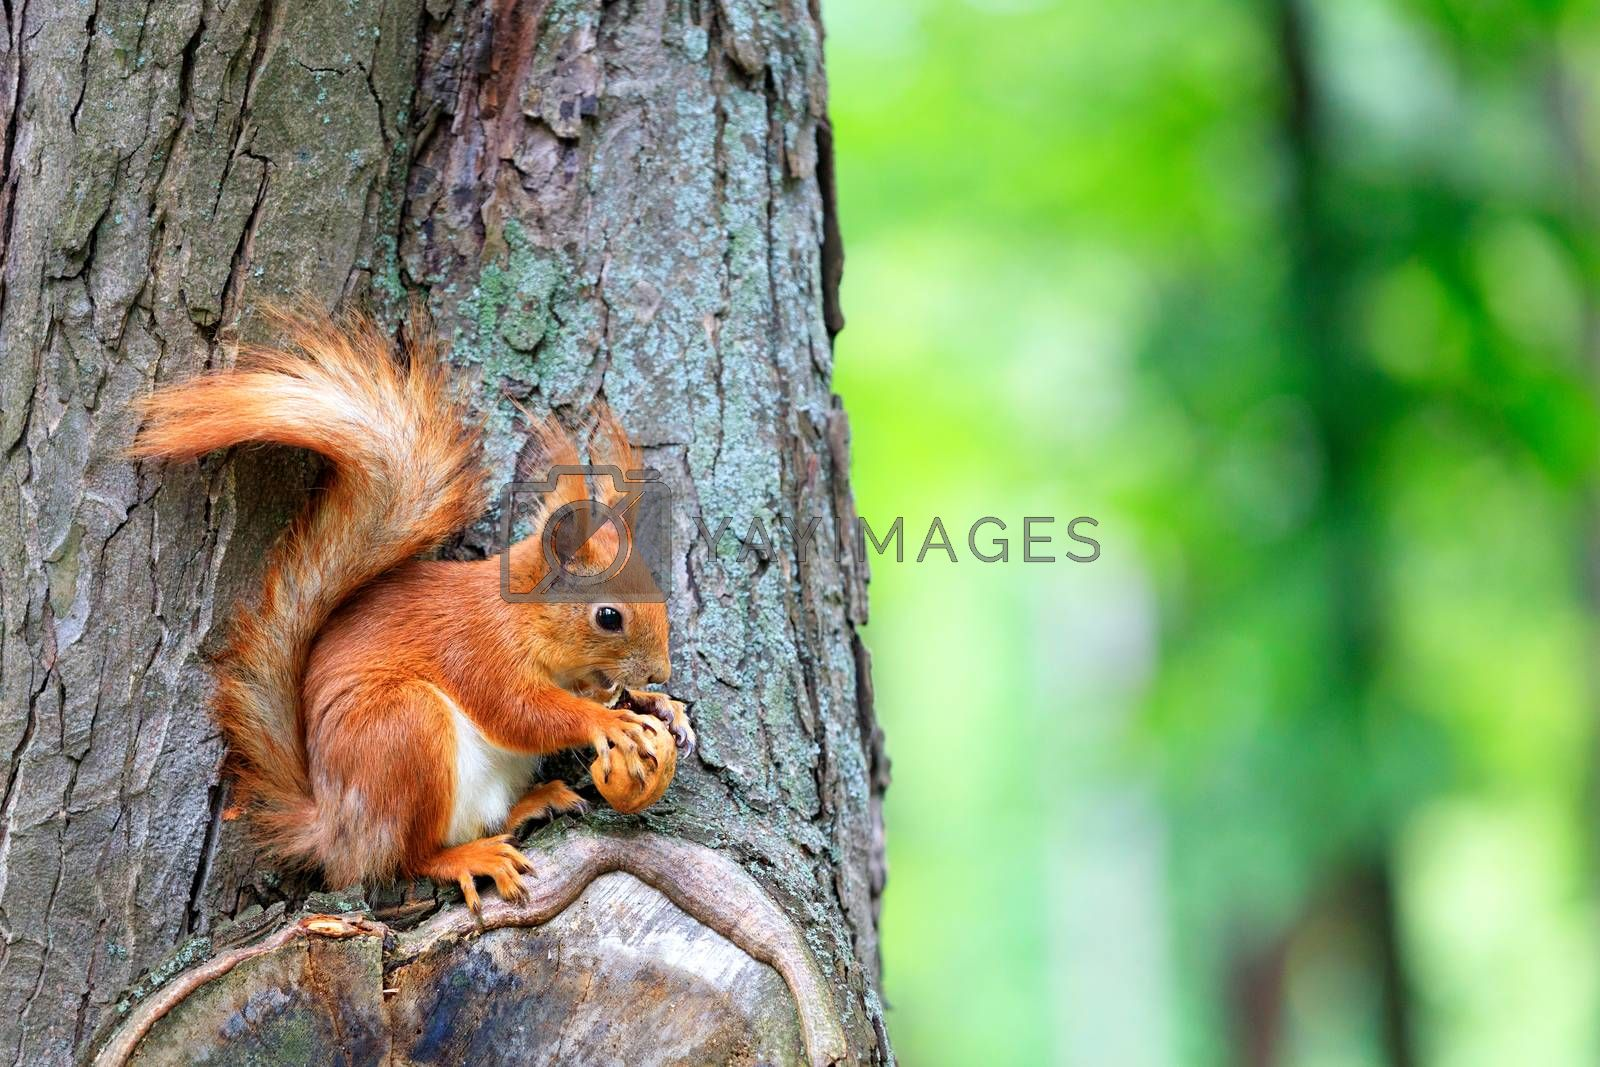 An orange fluffy squirrel sits on a tree and happily nibbles a nut, copy space.